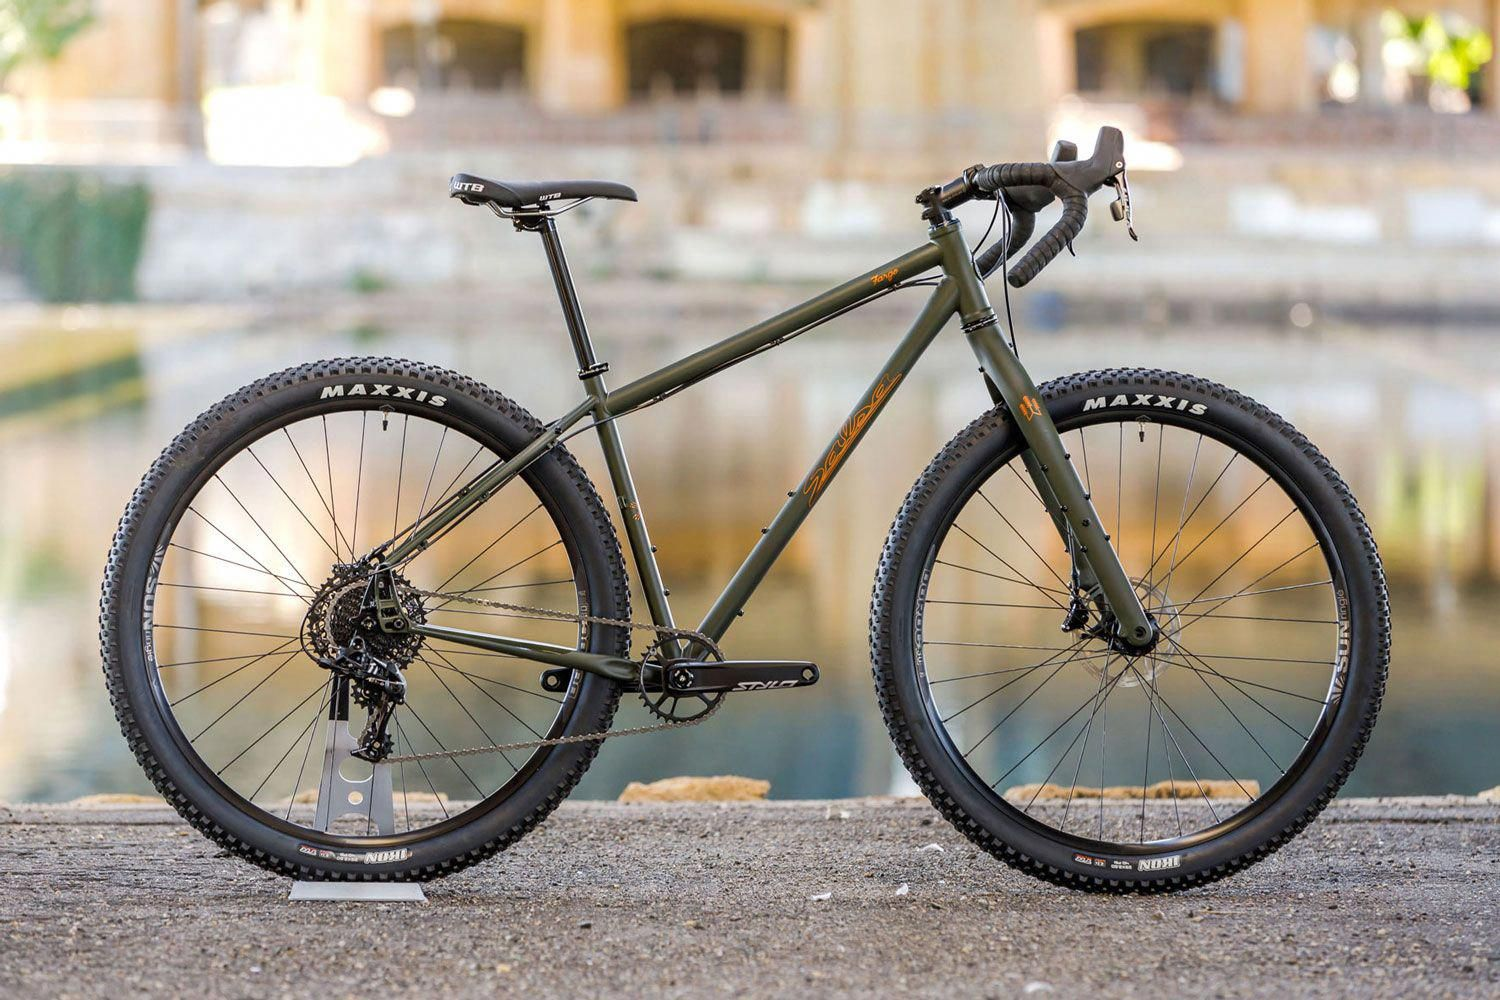 2019 Salsa Fargo 2 6 Tires Mountainbiketires Monster Bike